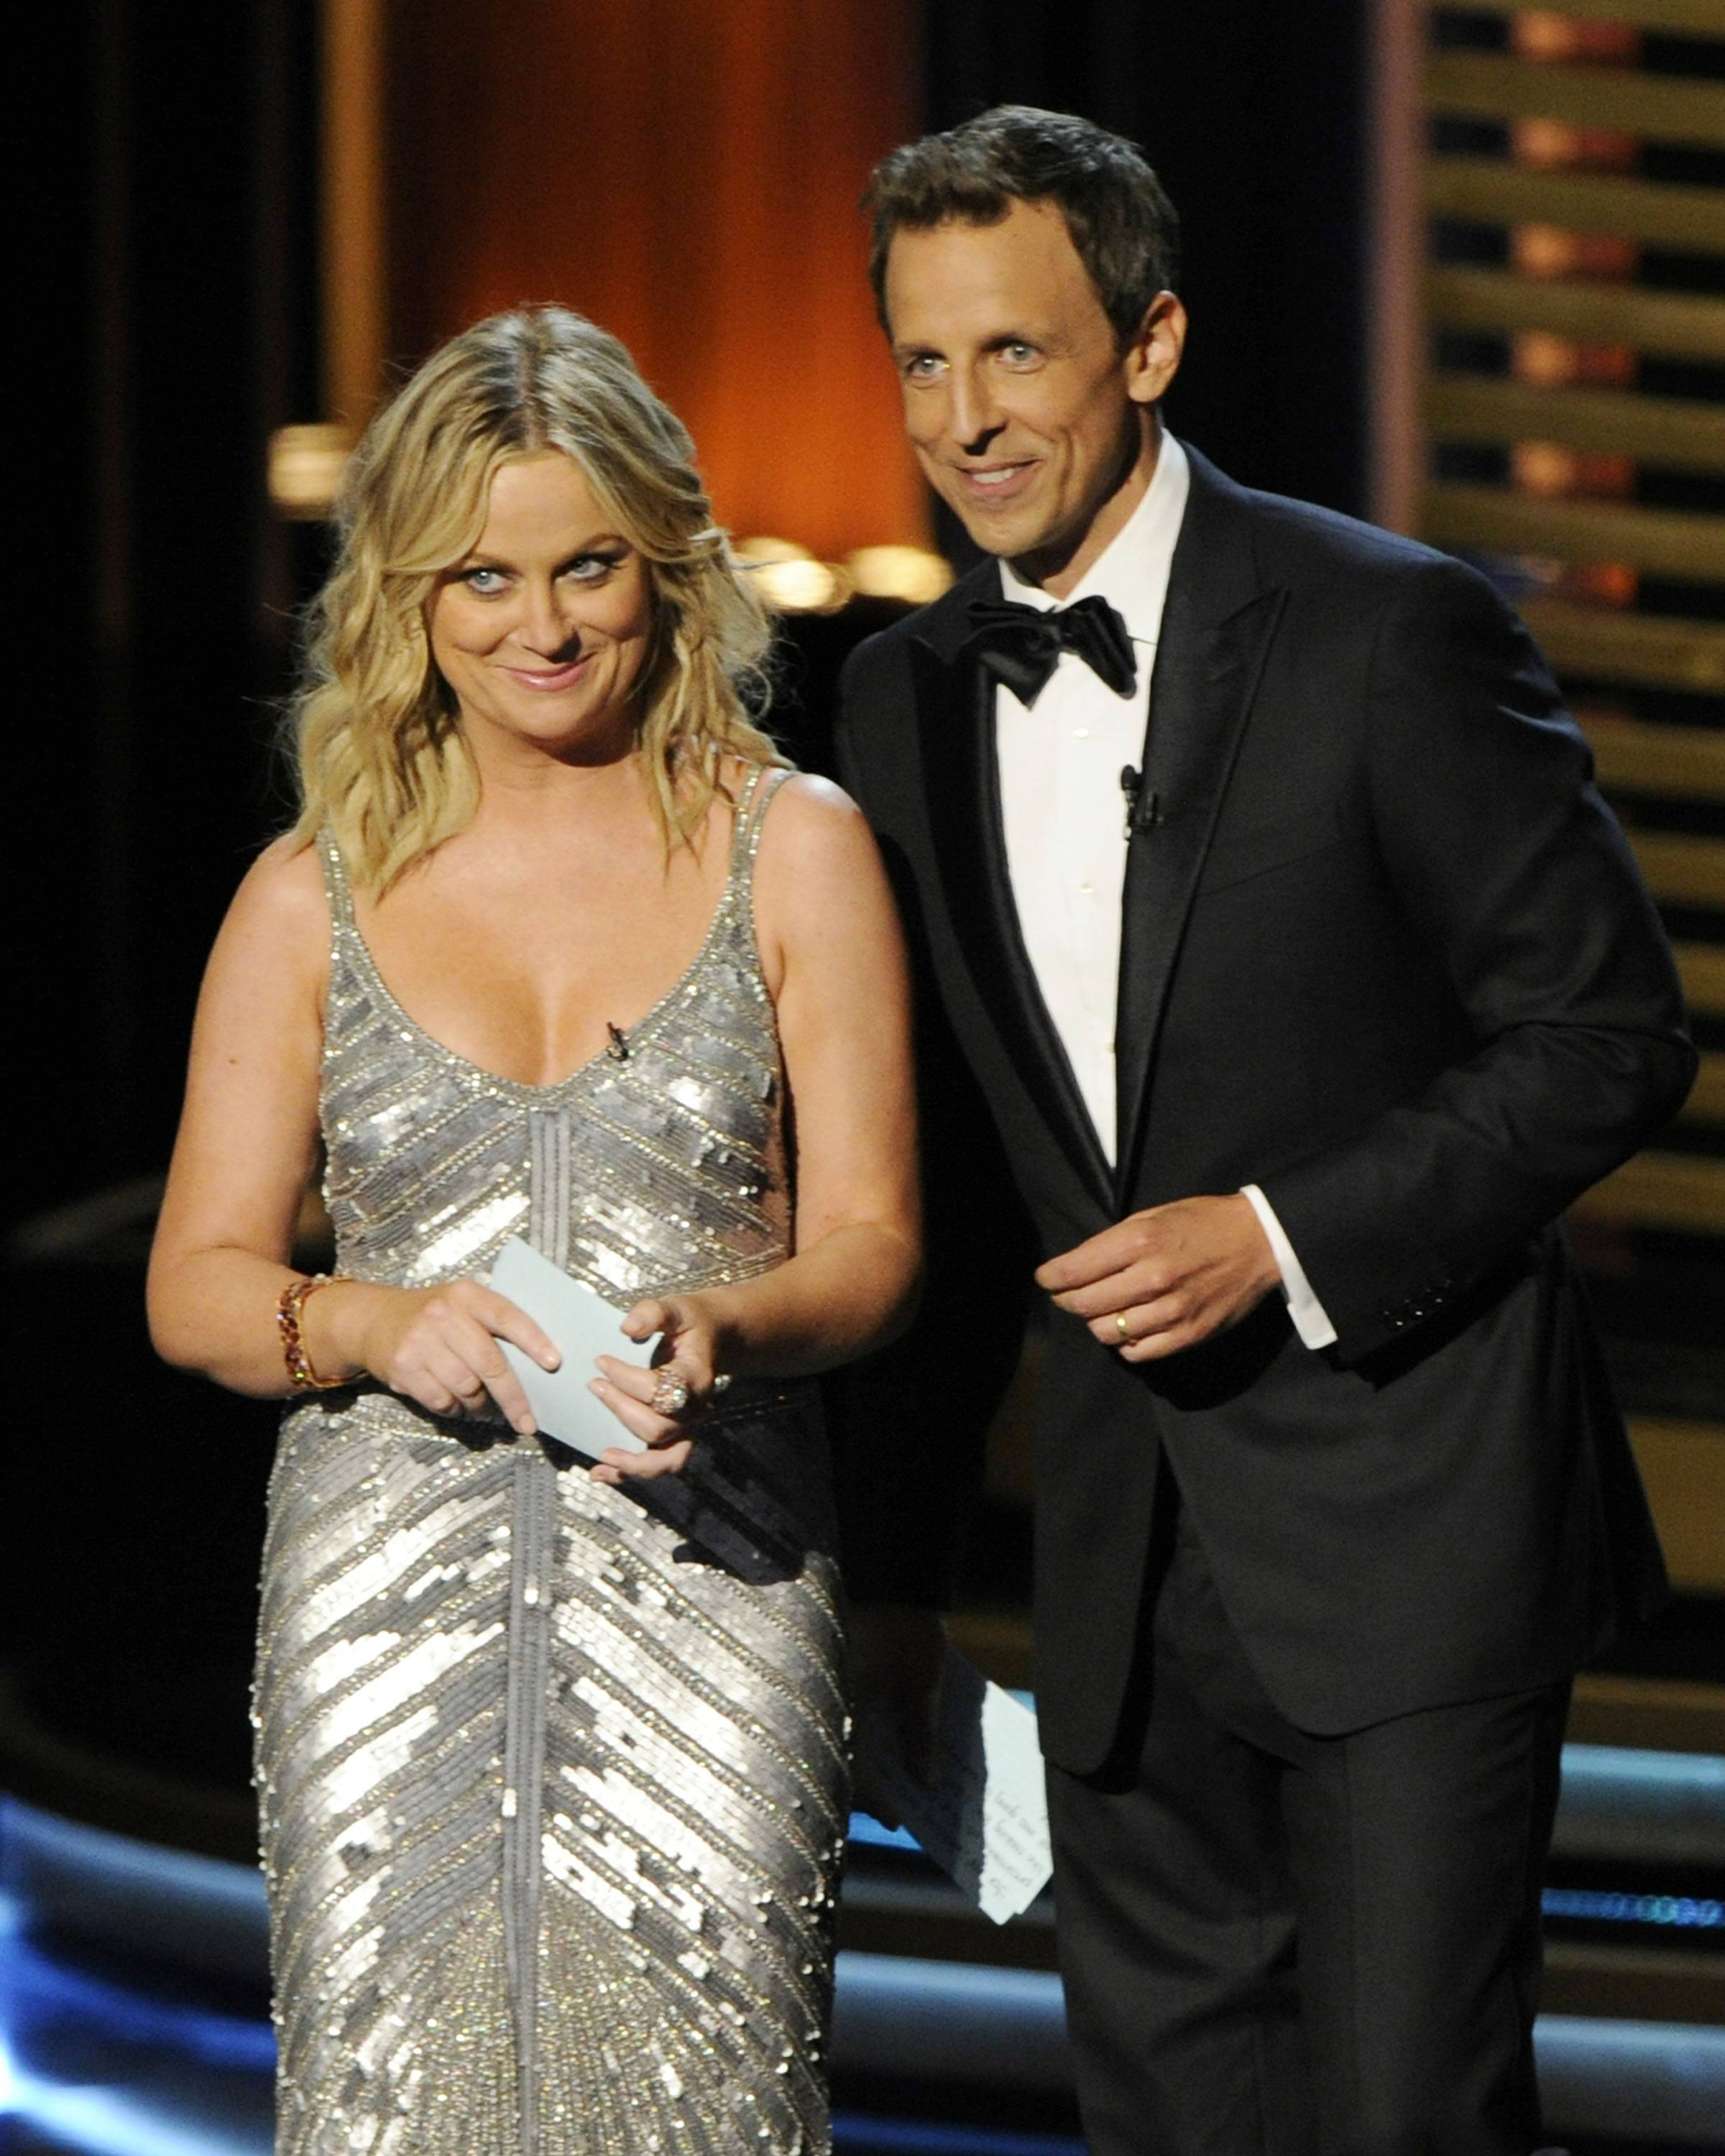 Brisk and breezy host Seth Meyers, here with Amy Poehler, kept the 66th Annual Primetime Emmy Awards rolling on Monday.